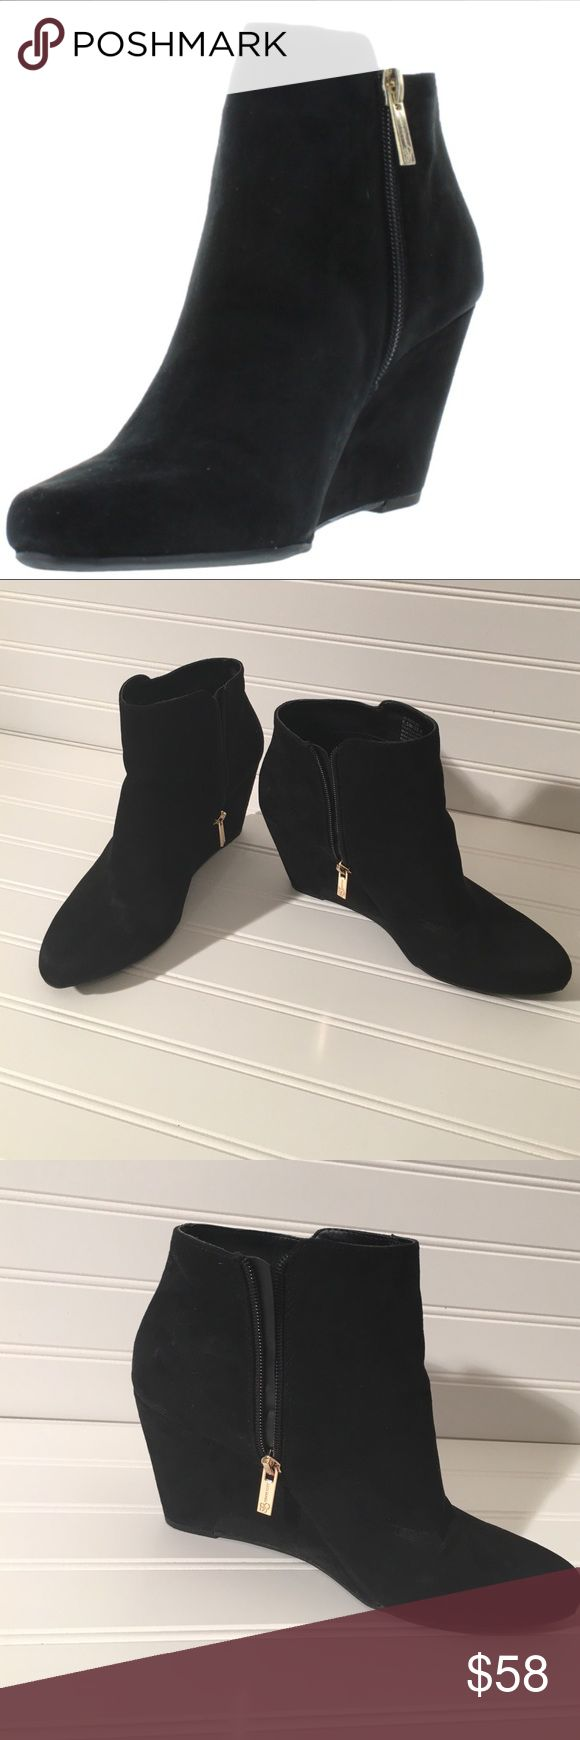 Jessica Simpson black suede wedge booties Jessica Simpson black suede wedge booties, excellent condition, only worn once. Jessica Simpson Shoes Heeled Boots